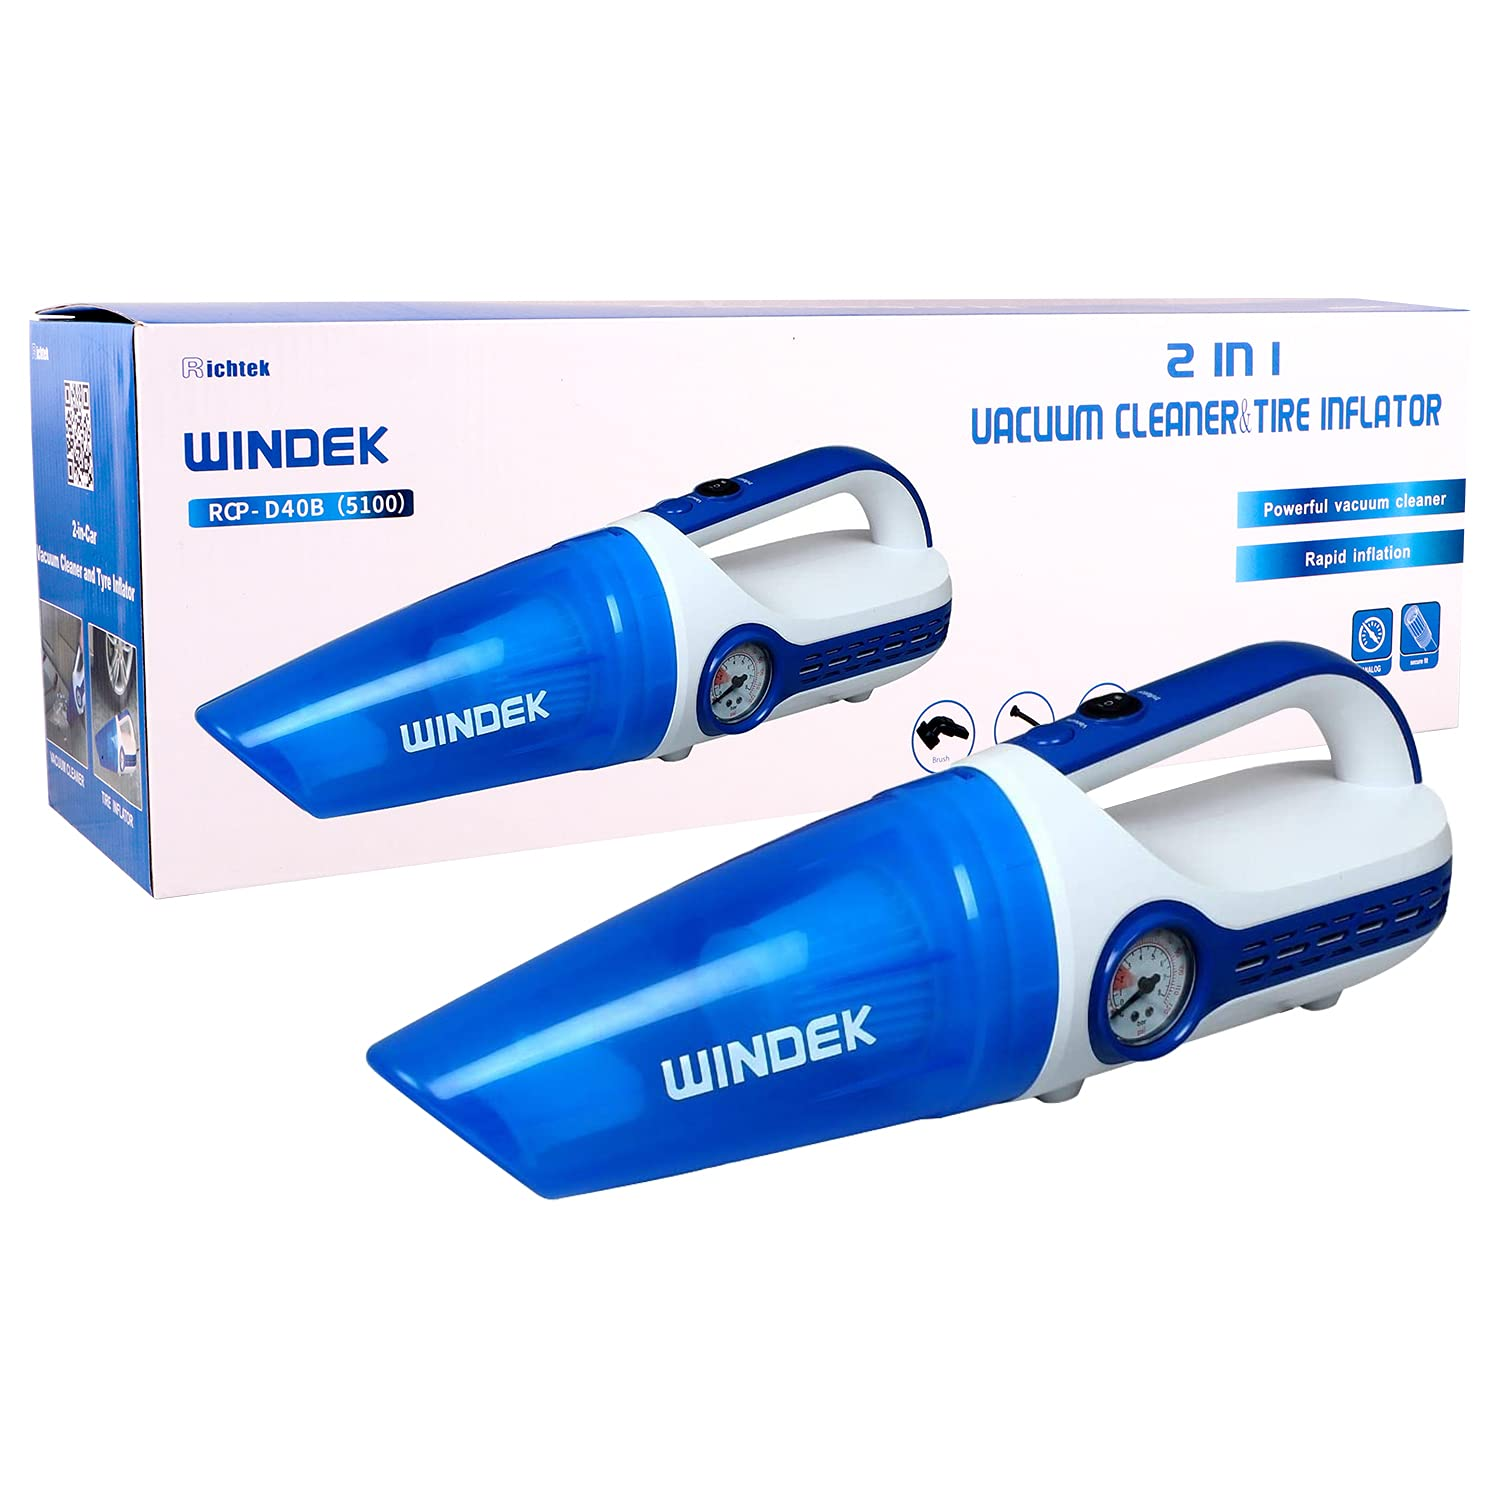 windek-5100-300-psi-heavy-duty-car-vacuum-cleaner-air-compressor-tyre-inflator-2-in-1-multi-functional-machine-compatible-with-all-bike-car-blue-white-universal